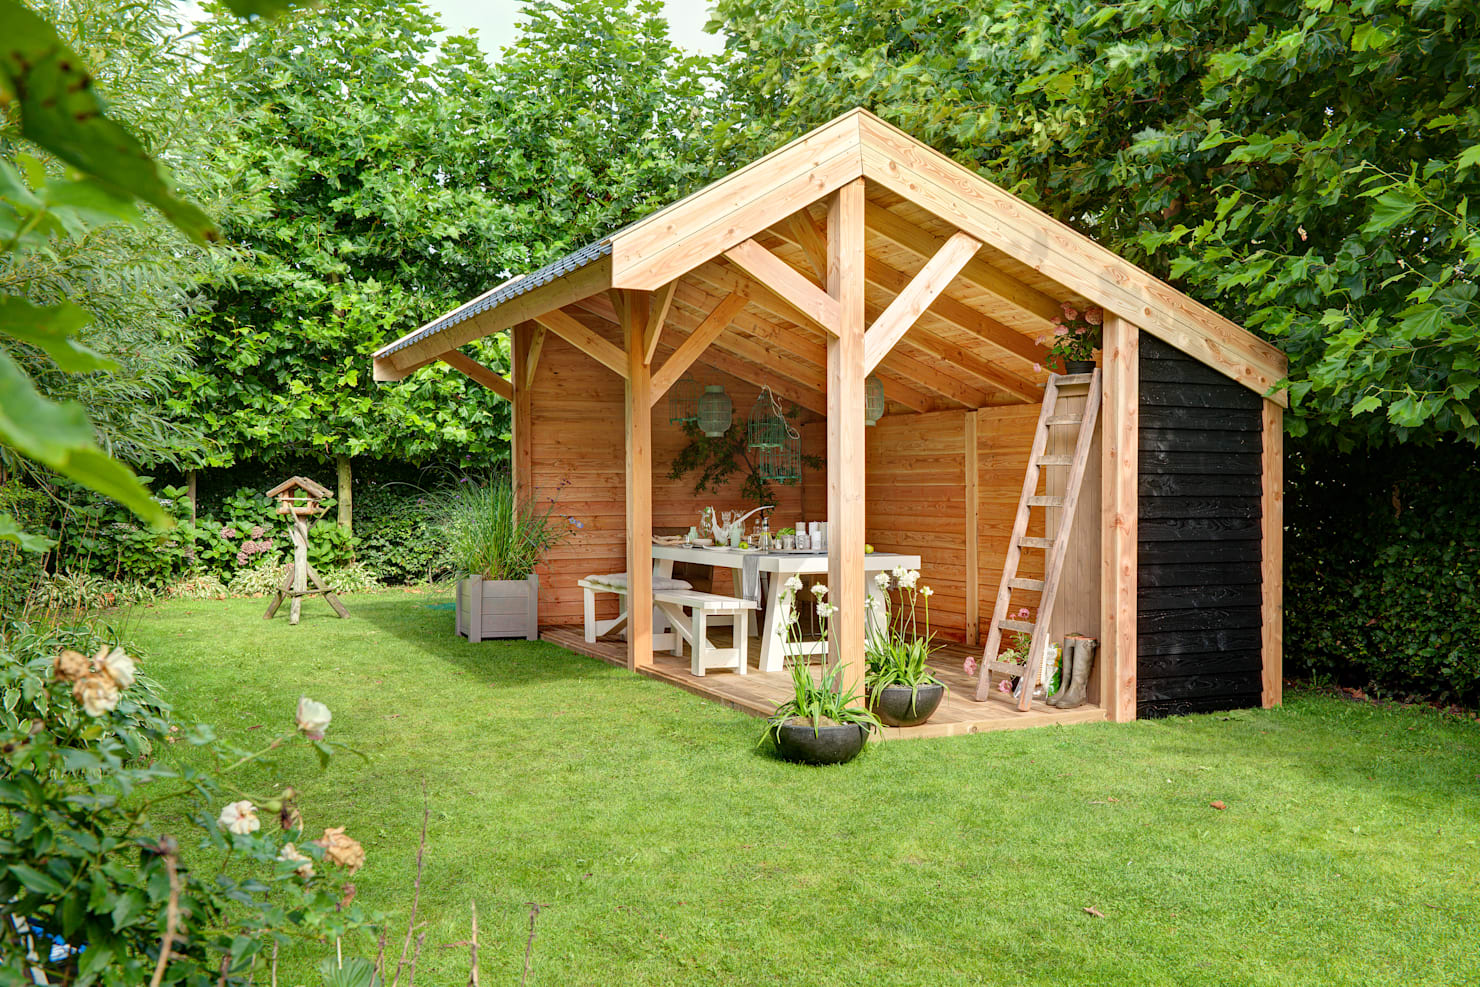 Woodworking: 10 easy ways to build your own pergola